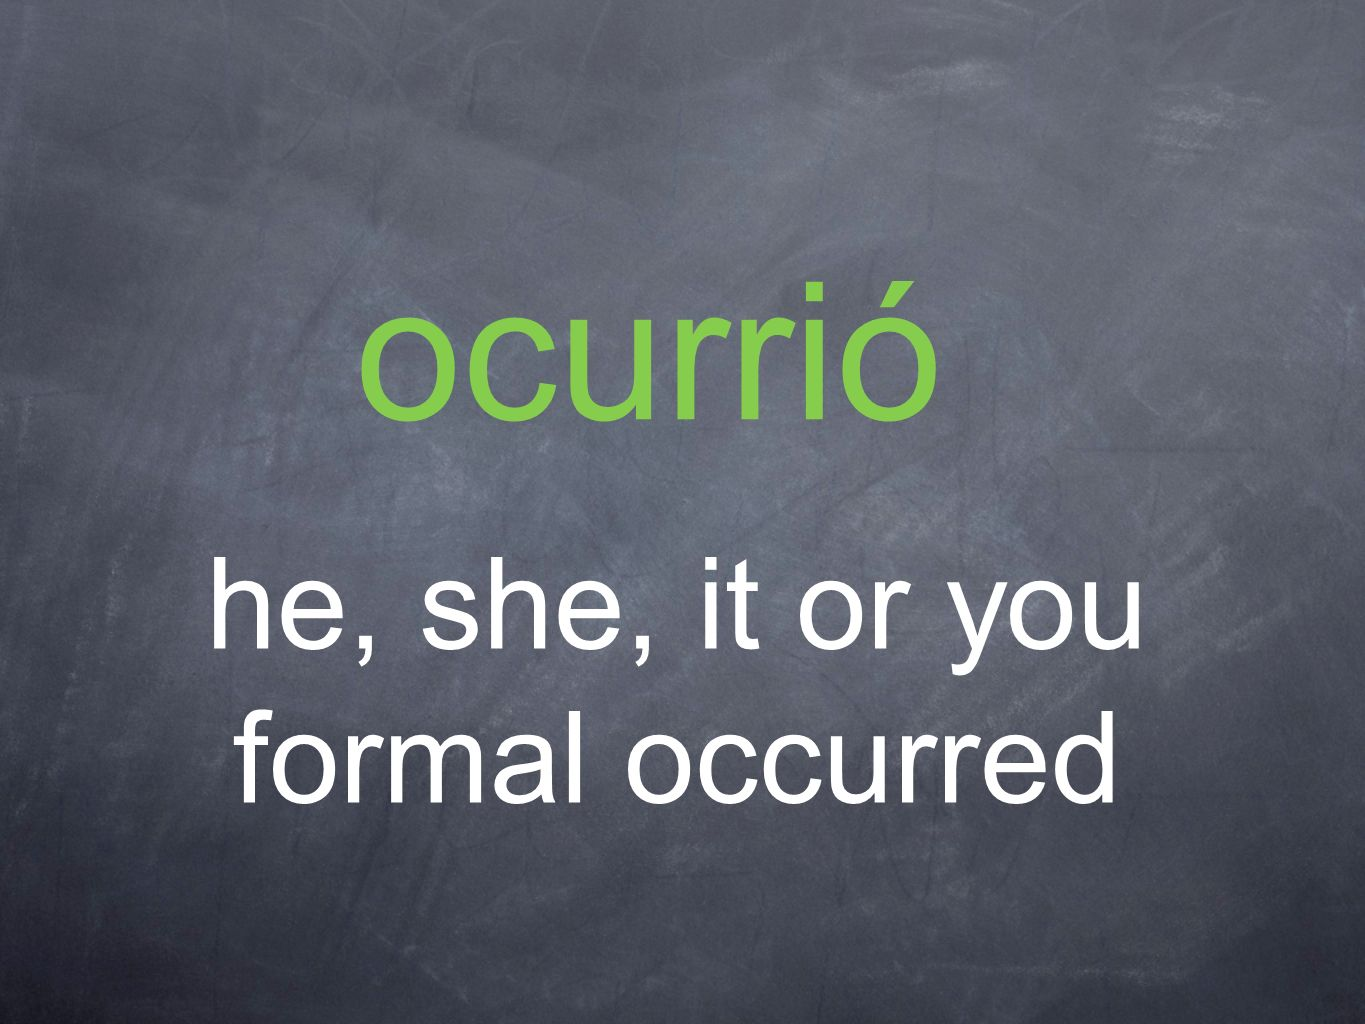 ocurrió he, she, it or you formal occurred